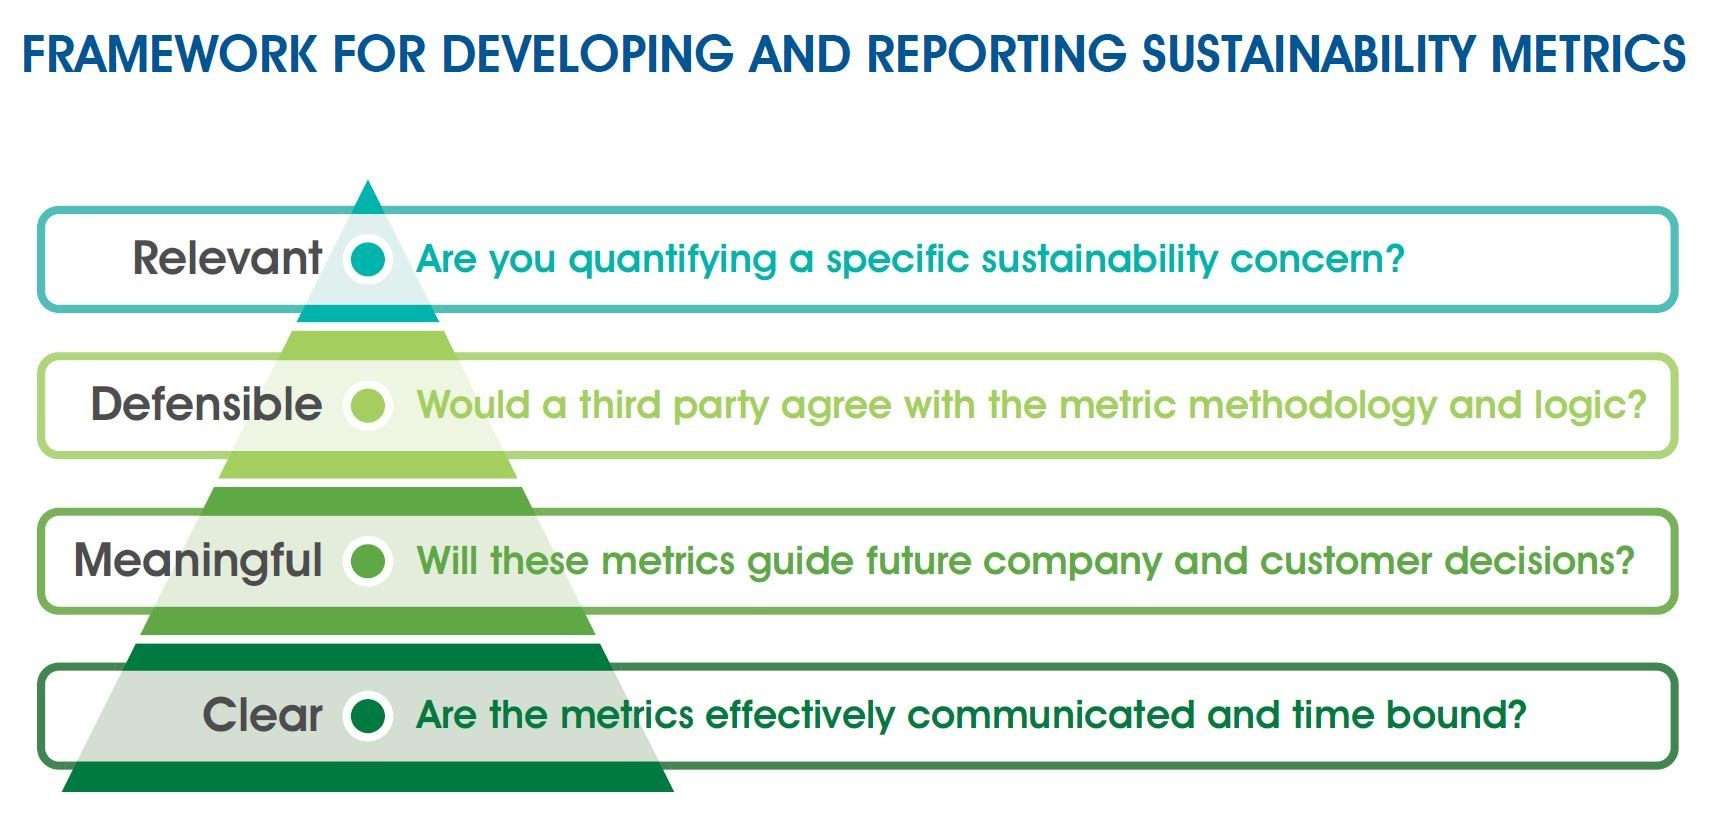 Framework for Developing and Reporting Sustainability Metrics infographic